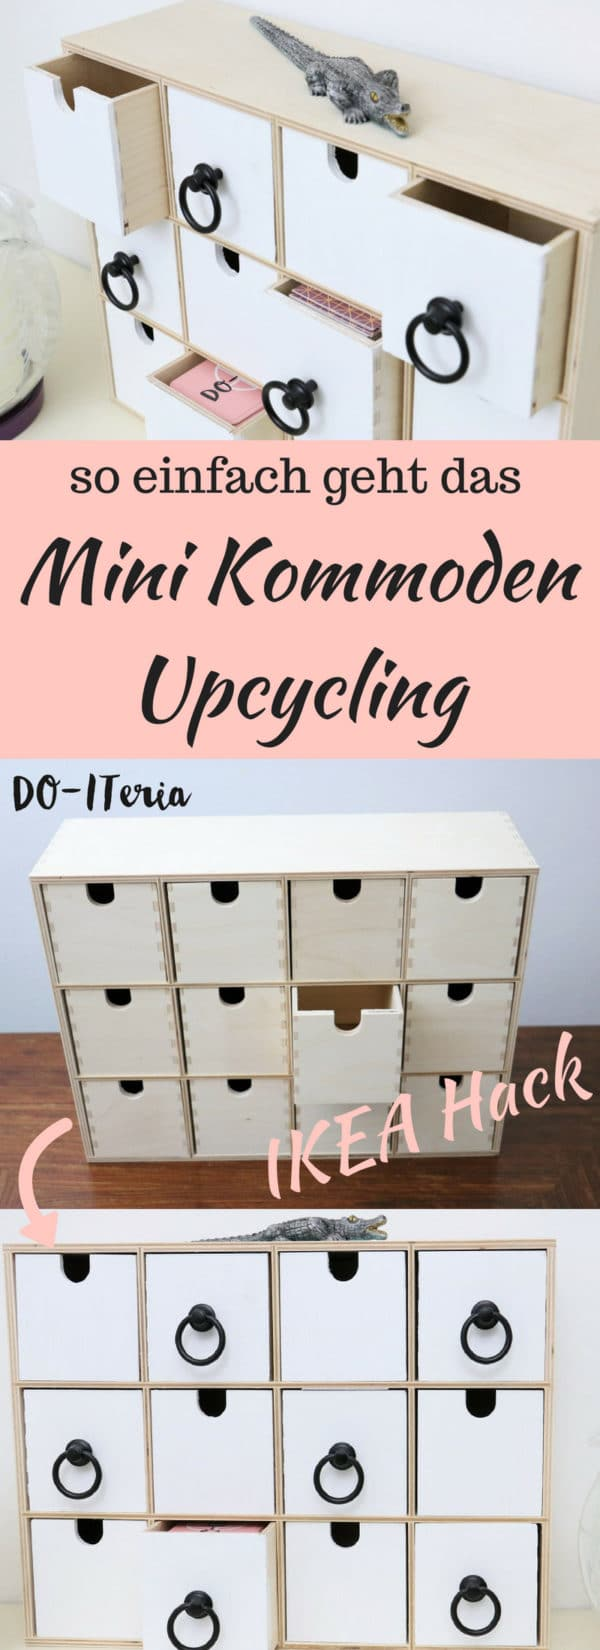 Upcycling einer Mini Kommode